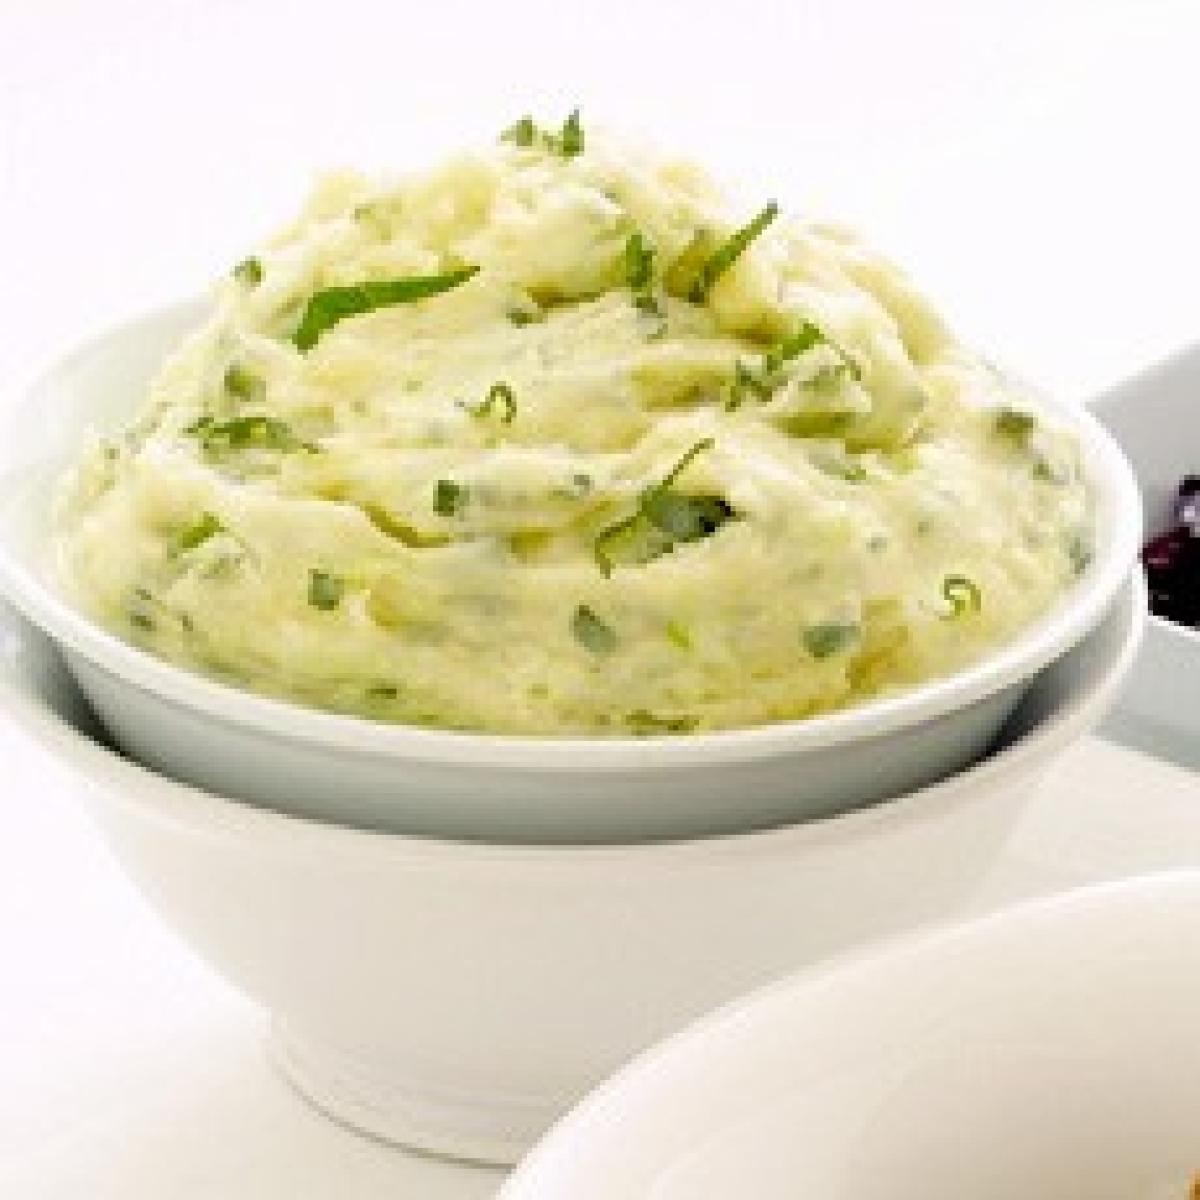 A picture of Delia's Mashed Potato with Sage recipe